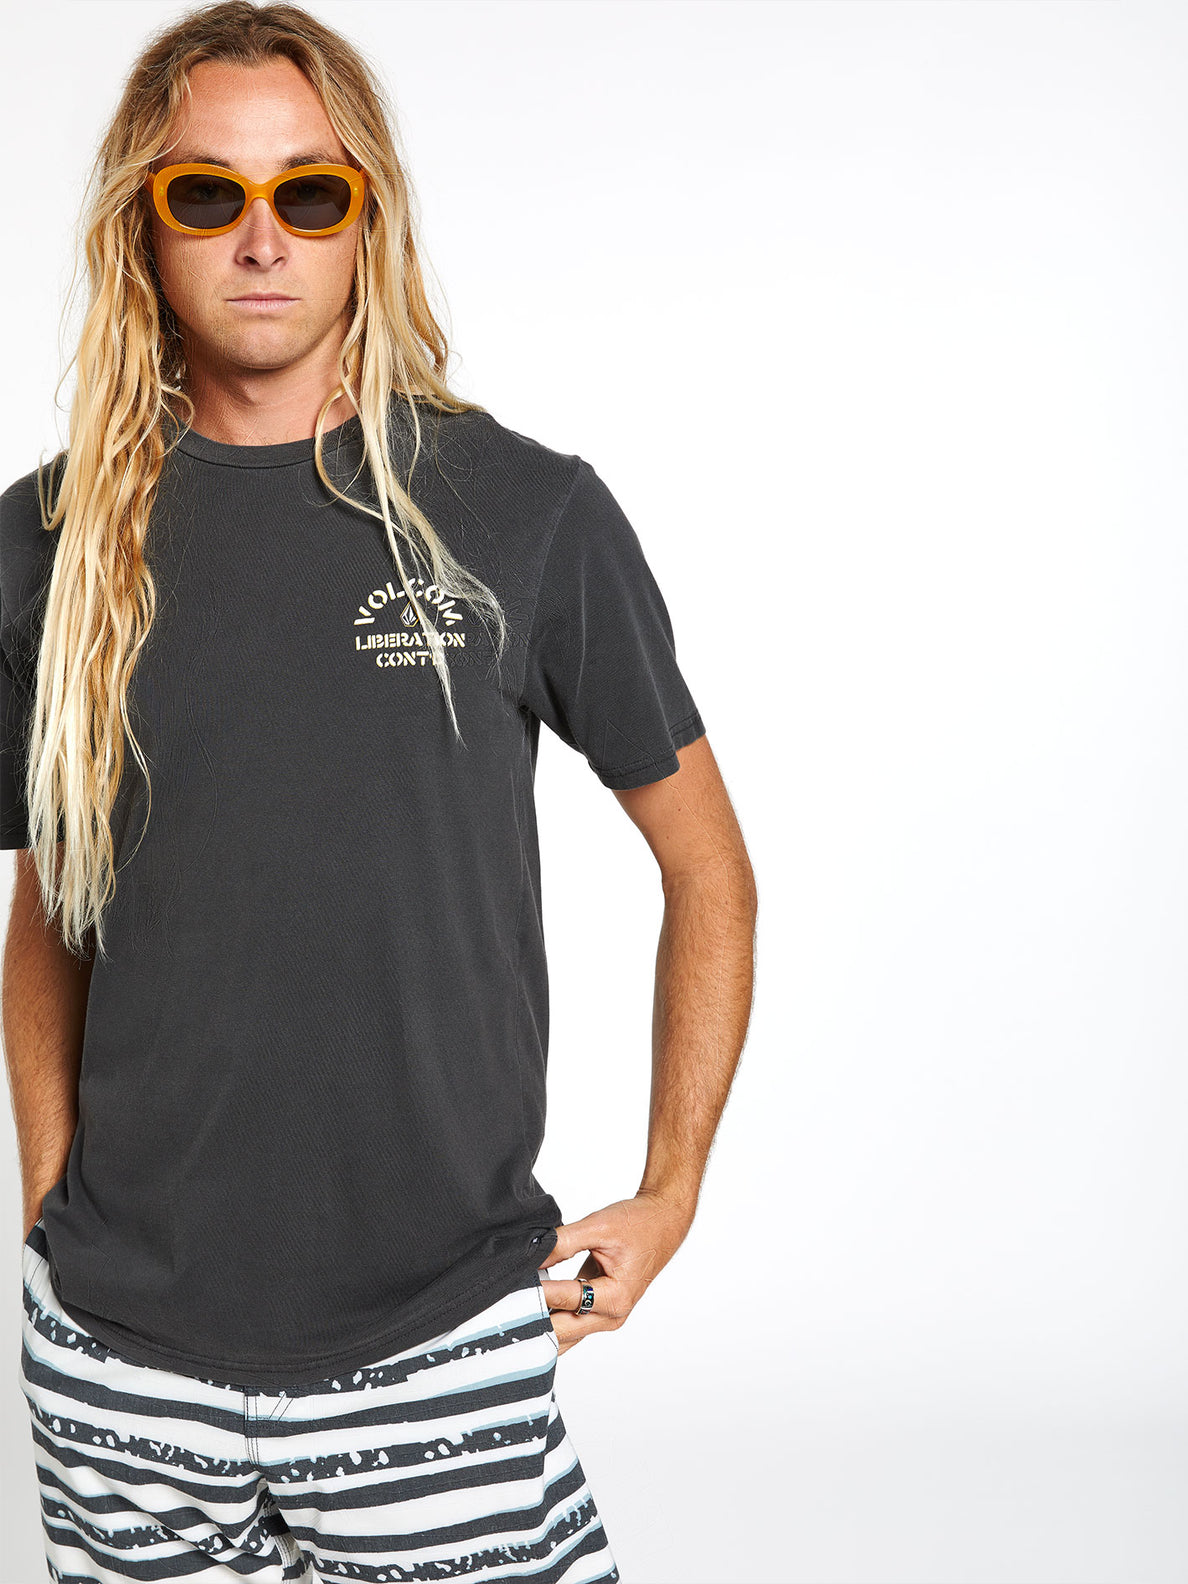 CJ COLLINS S/S TEE (A5212002_BLK) [26]